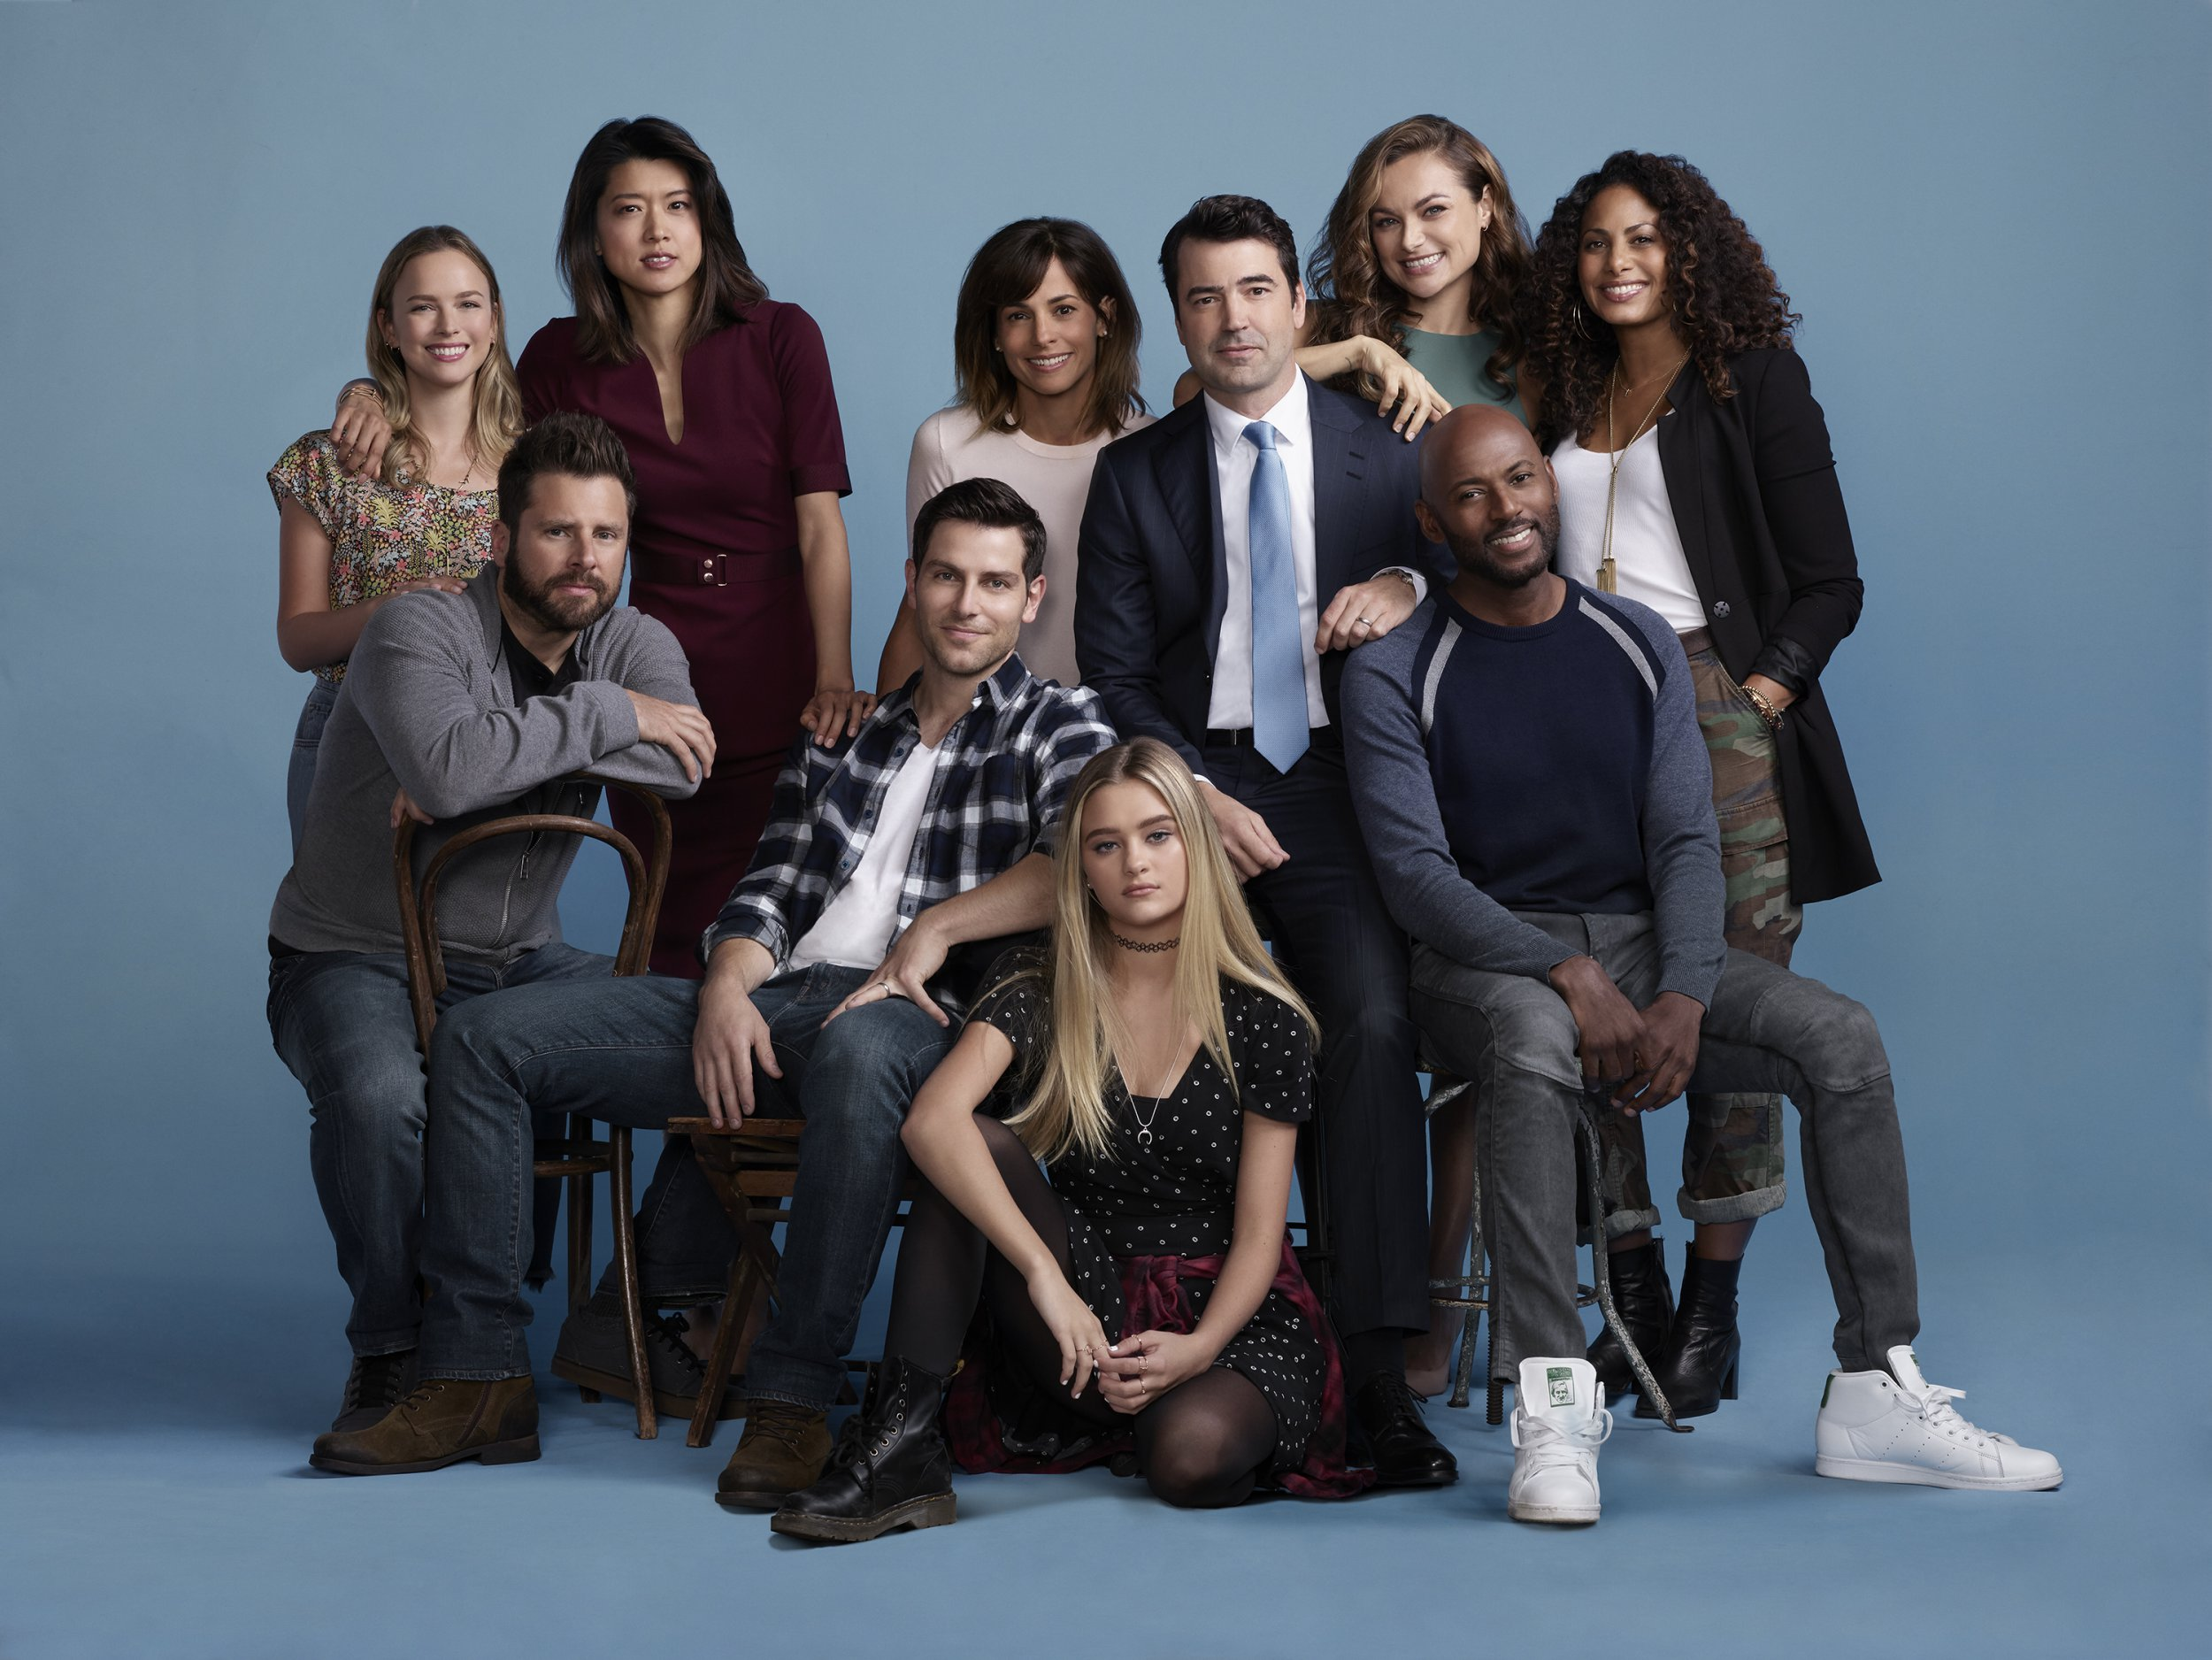 "A MILLION LITTLE THINGS - ABC's ""A Million Little Things"" stars Allison Miller as Maggie, James Roday as Gary, Grace Park as Katherine, David Giuntoli as Eddie, Stephanie Szostak as Delilah, Ron Livingston as Jon, Christina Ochoa ashley, Romany Malco as Rome, and Christina Moses as Regina. (Matthias Clamer via Getty Images)"